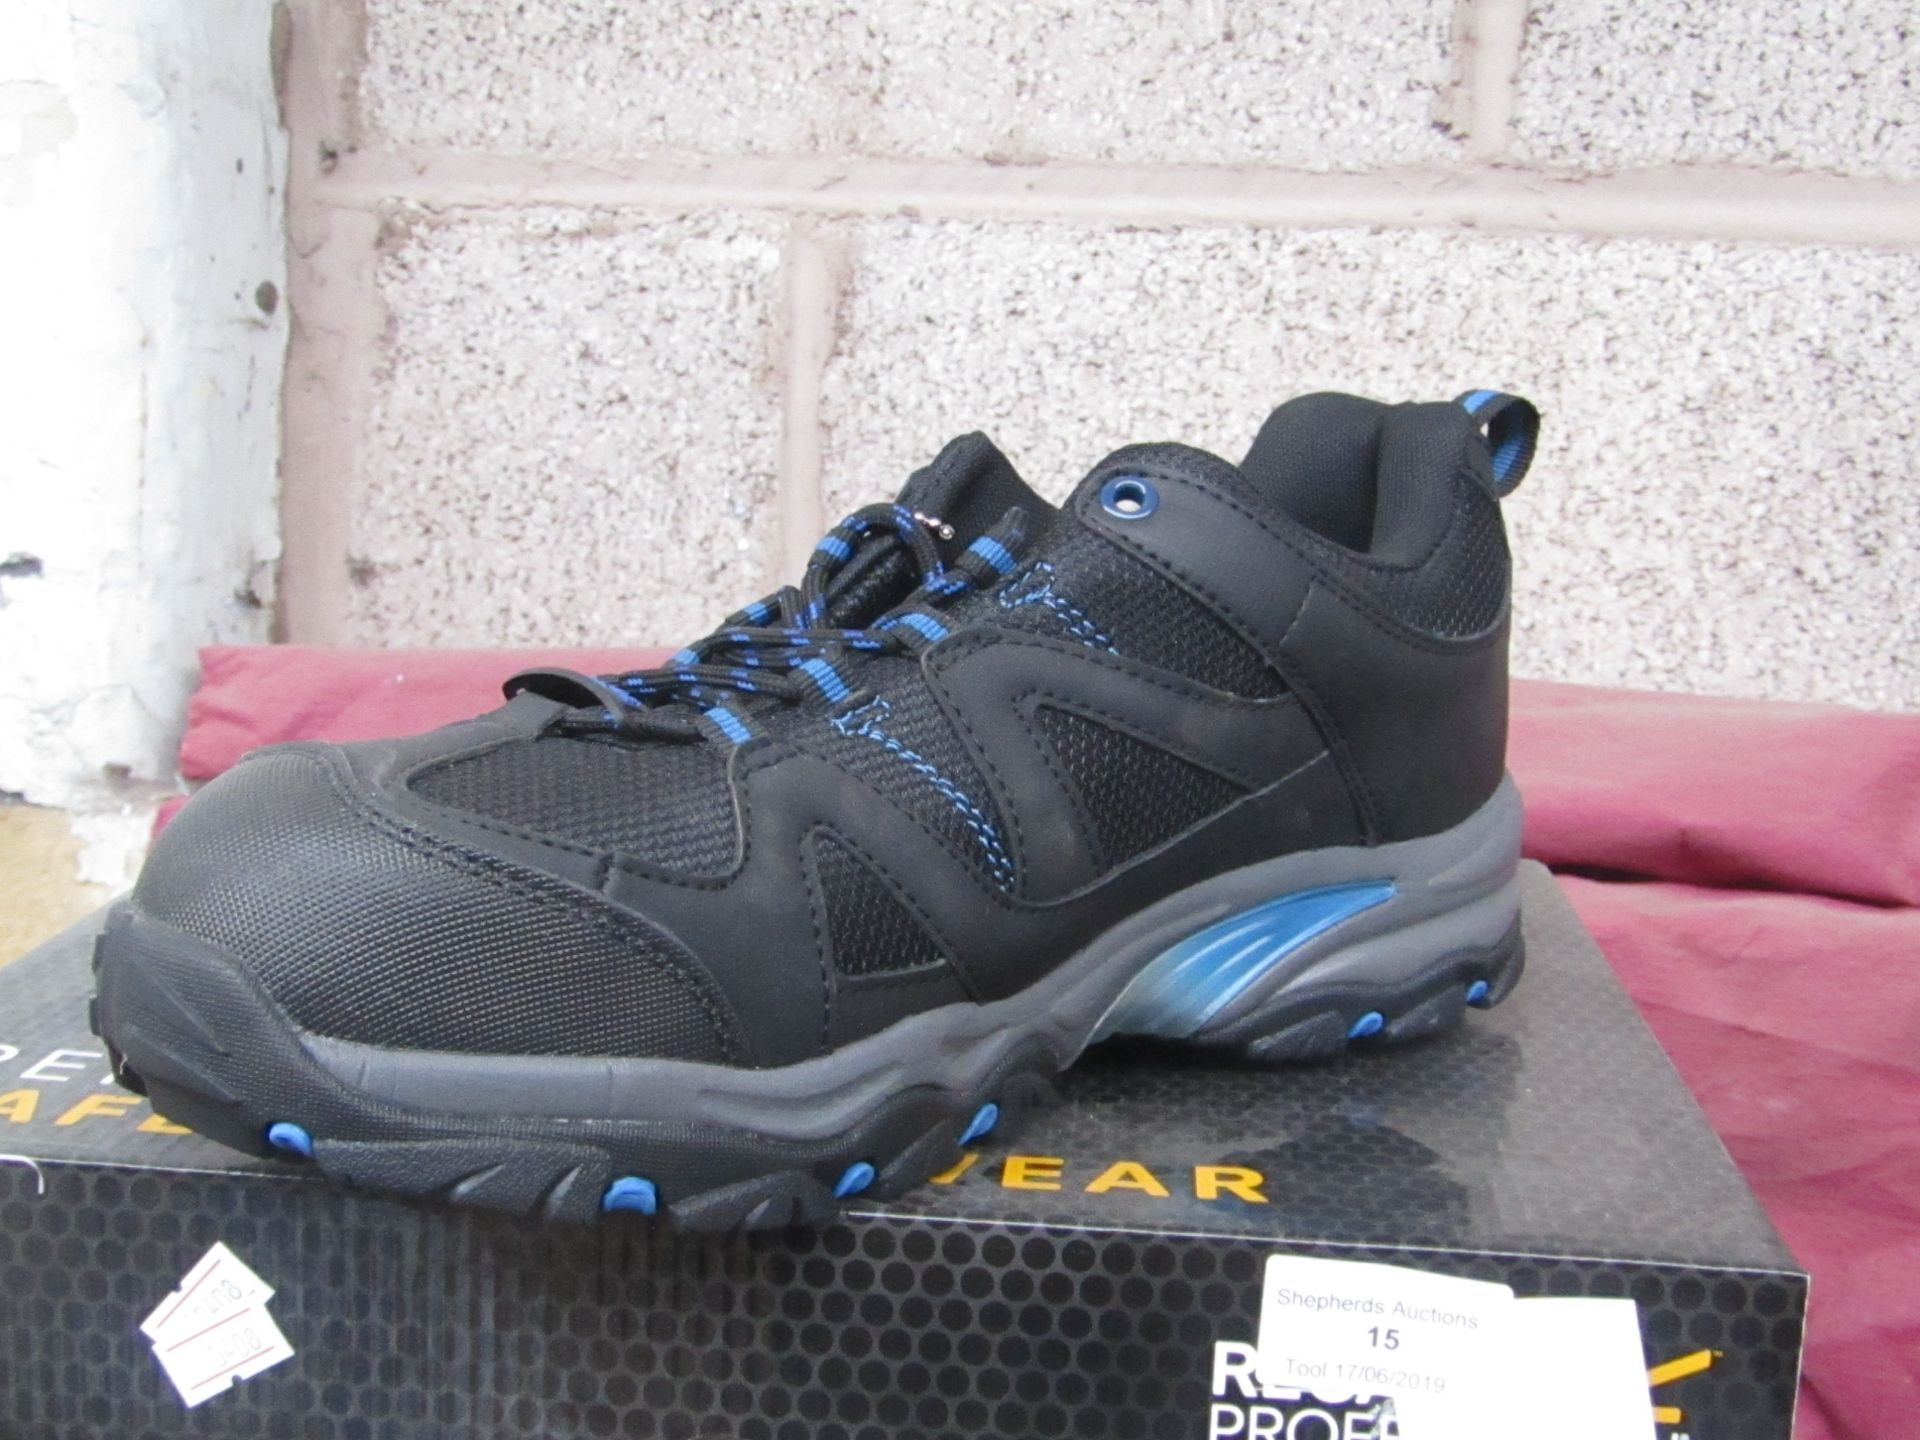 Lot 15 - Regatta professional safety footwear, size UK 9, boxed and new